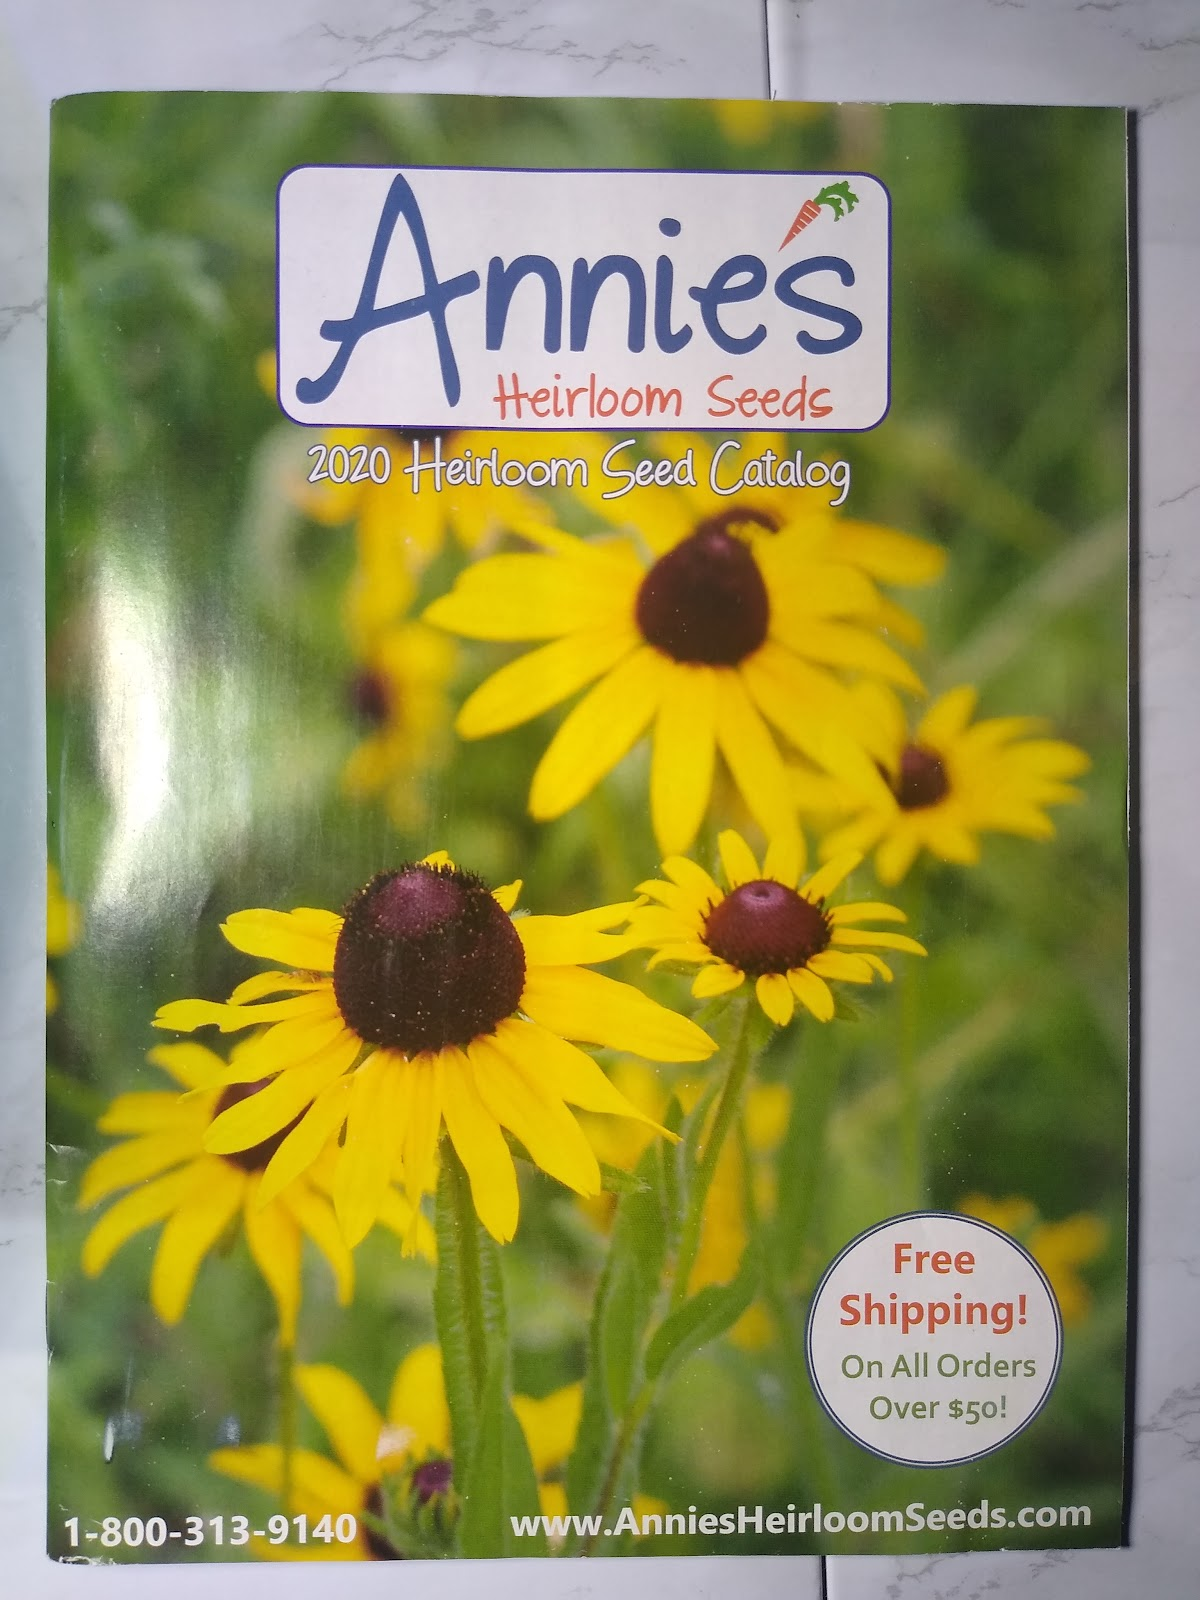 Annie's Heirloom Seeds catalog picture